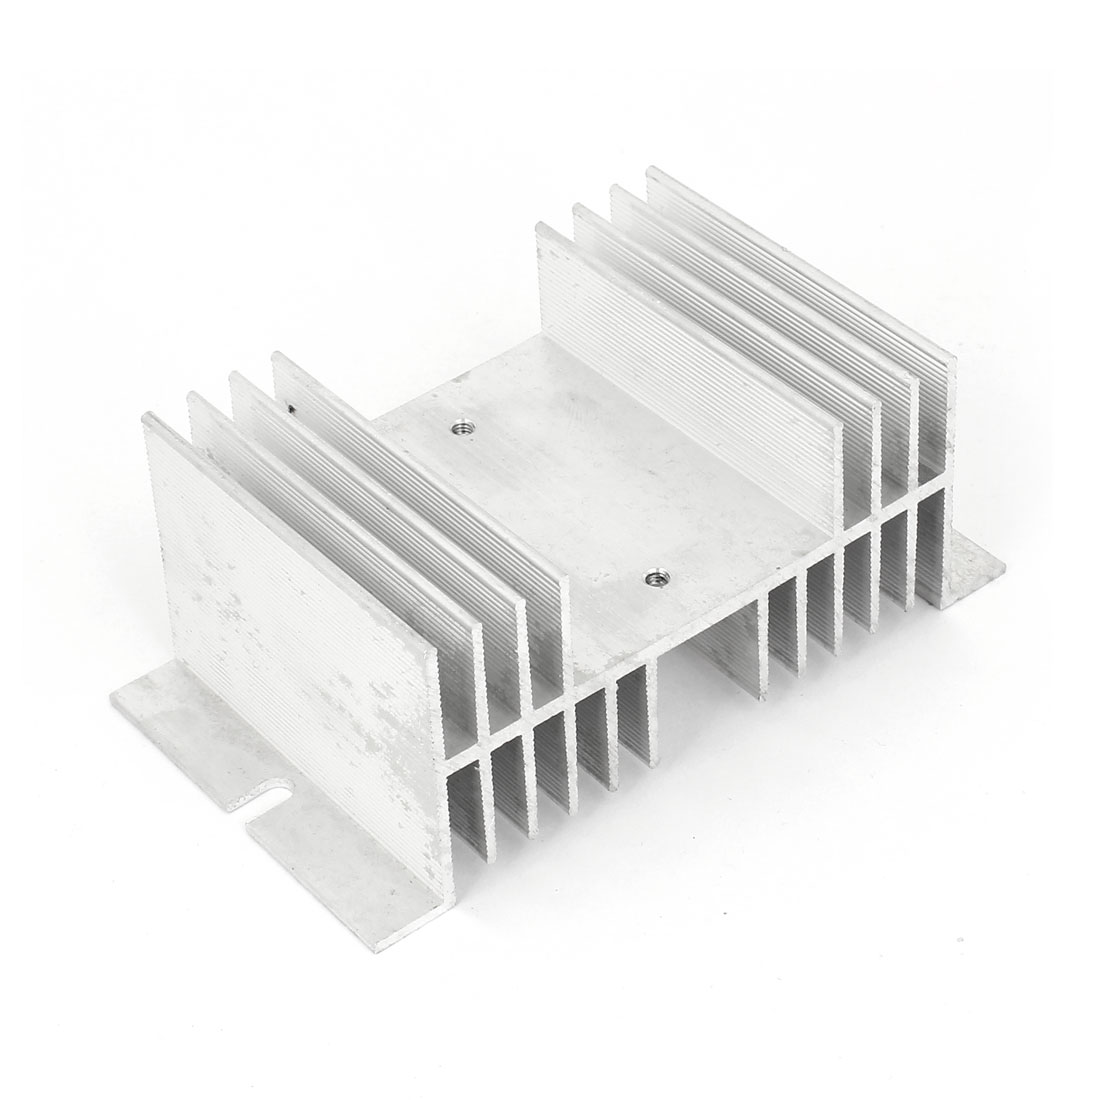 126mm x 70mm x 50mm Aluminum Heat Diffuse Solid State Relay Heatsink Cooler